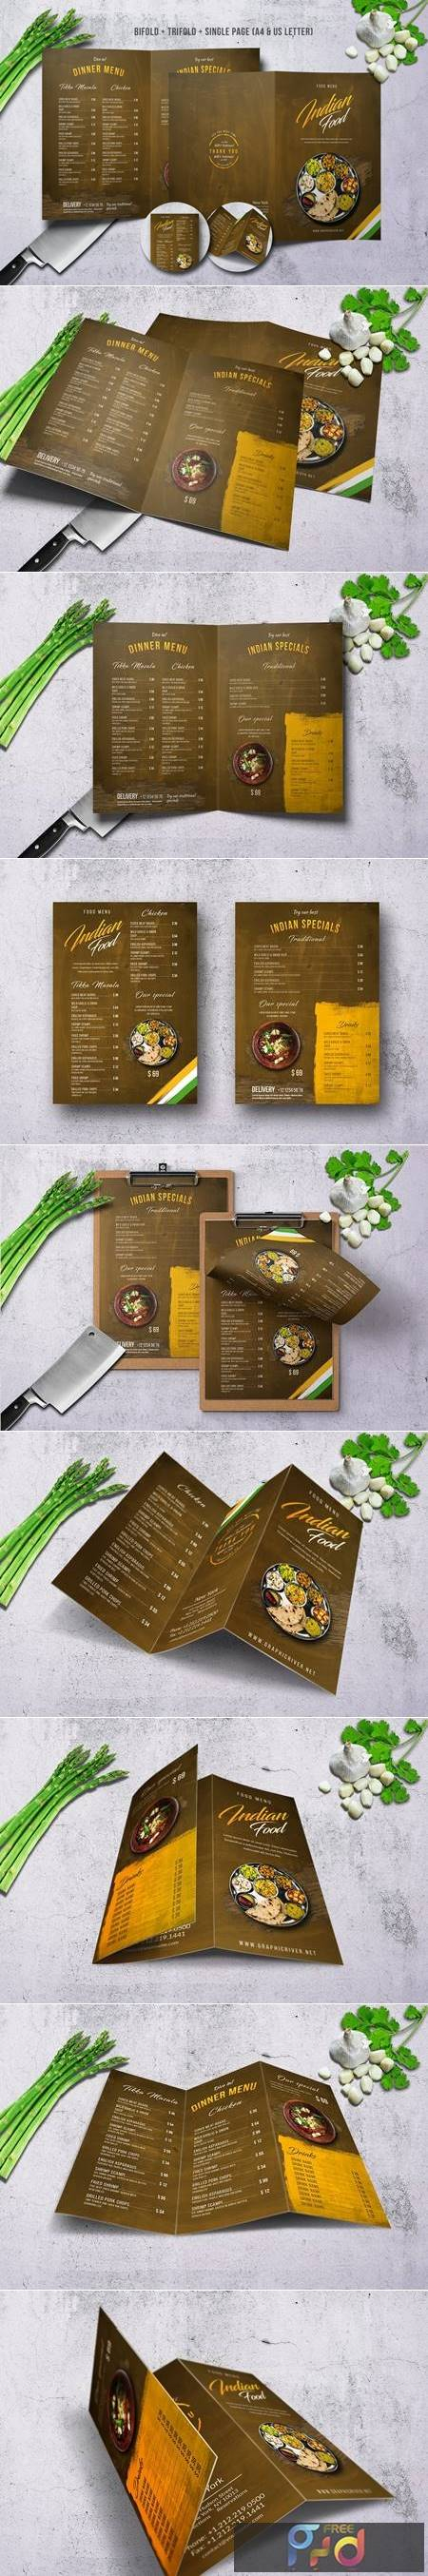 Indian A4 & US Letter Food Menu Bundle SVMAMB 1